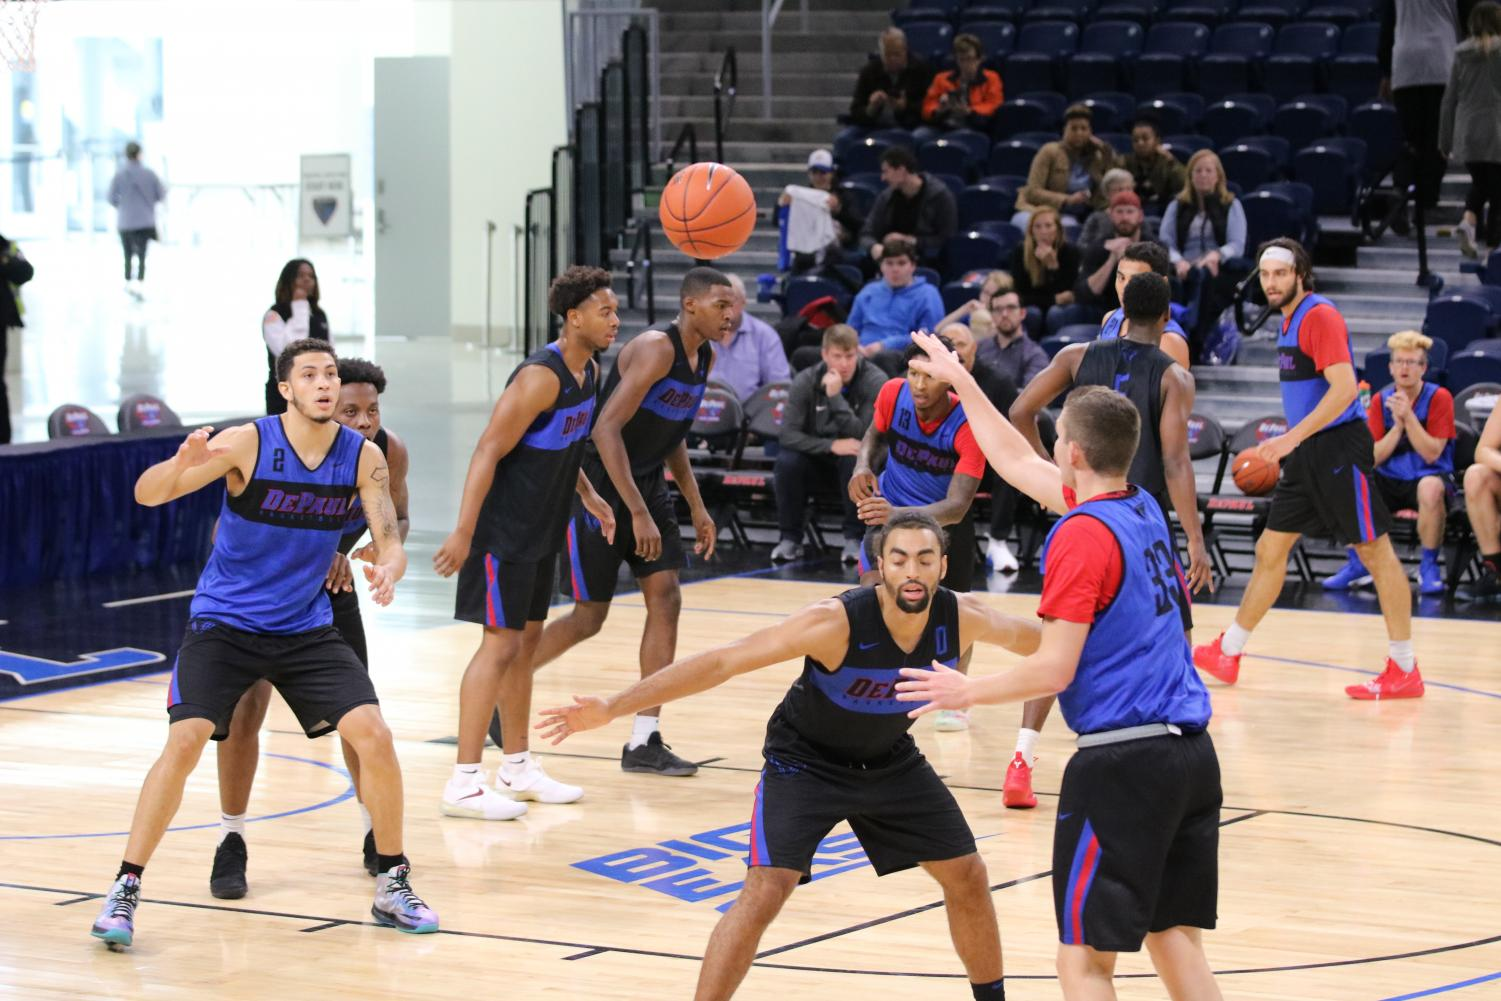 DePaul players practice at Wintrust Arena as part of an open practice on Oct. 13.  Alec Farley | The DePaulia